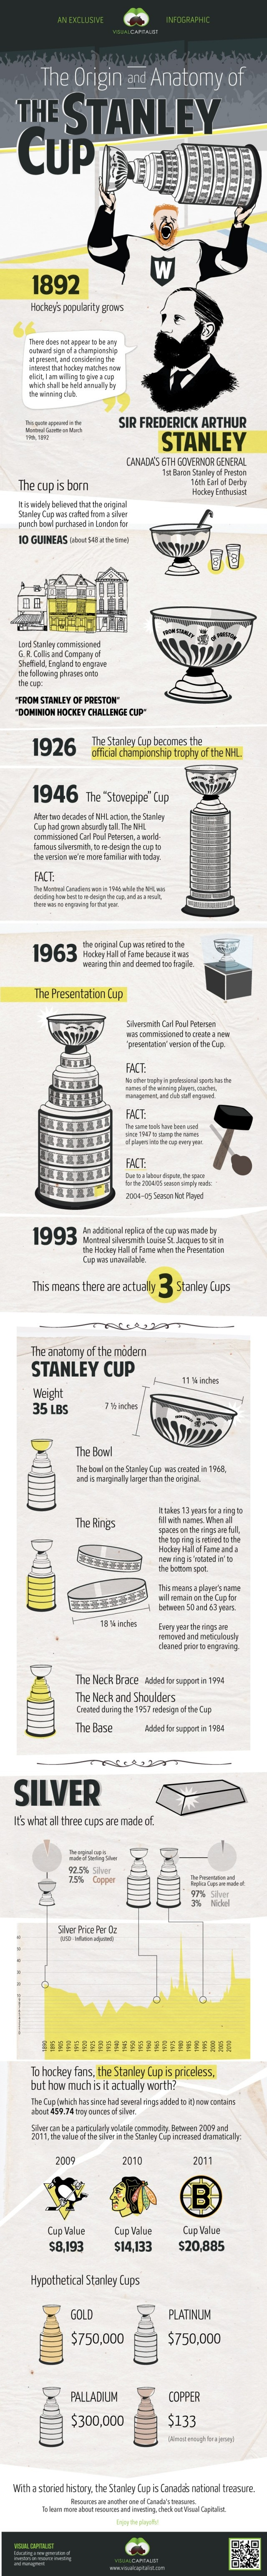 Still the coolest and hardest trophy to win in all of sports: Lord Stanley's Cup. The quest begins anew!